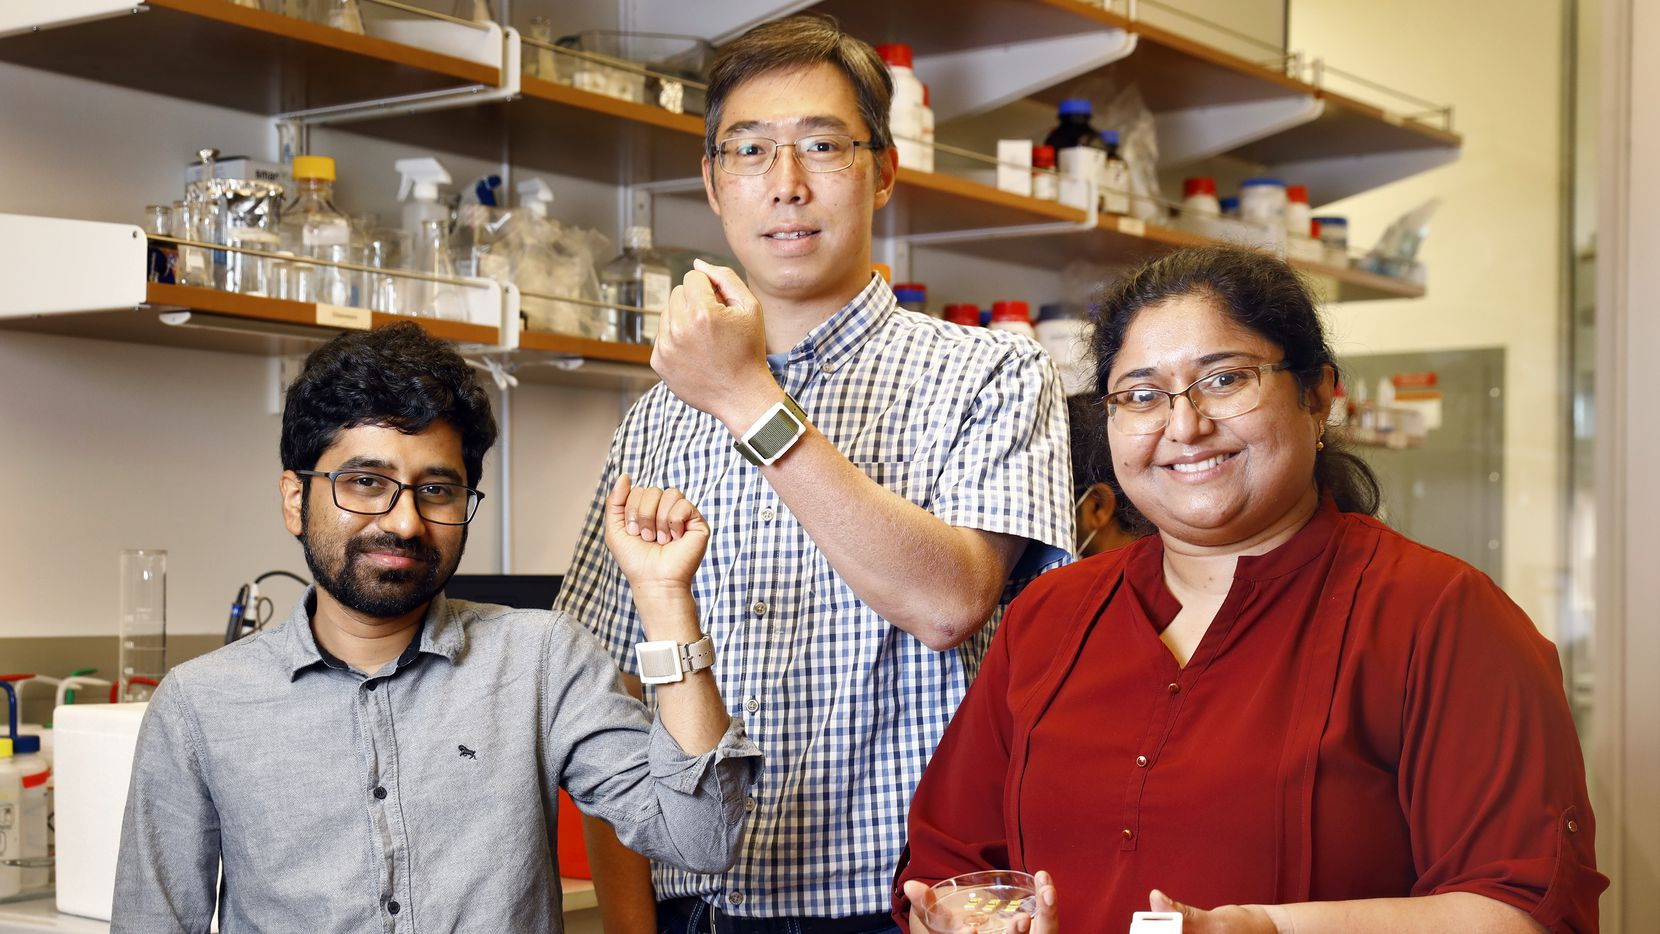 Dept of Bioengineering scientists at the University of Texas at Dallas, including (from left) doctoral candidate Badrinath Jagannath,  research scientist II Kai-Chun Lin and professor and co-founder of EnLisense LLC Shalini Prasad have developed wearable technology that can measure the amount of cytokines present in sweat. Cytokines are molecules that help the body fight off infections, like the flu or COVID-19. This technology to continuously monitor cytokine levels could help detect when a person is sick as soon as their immune system kicks into gear and potentially before they even start feeling symptoms. This research is being done at the Biomedical Microdevices and Nanotechnology Lab on the Richardson, Texas campus, Friday, June 25, 2021.